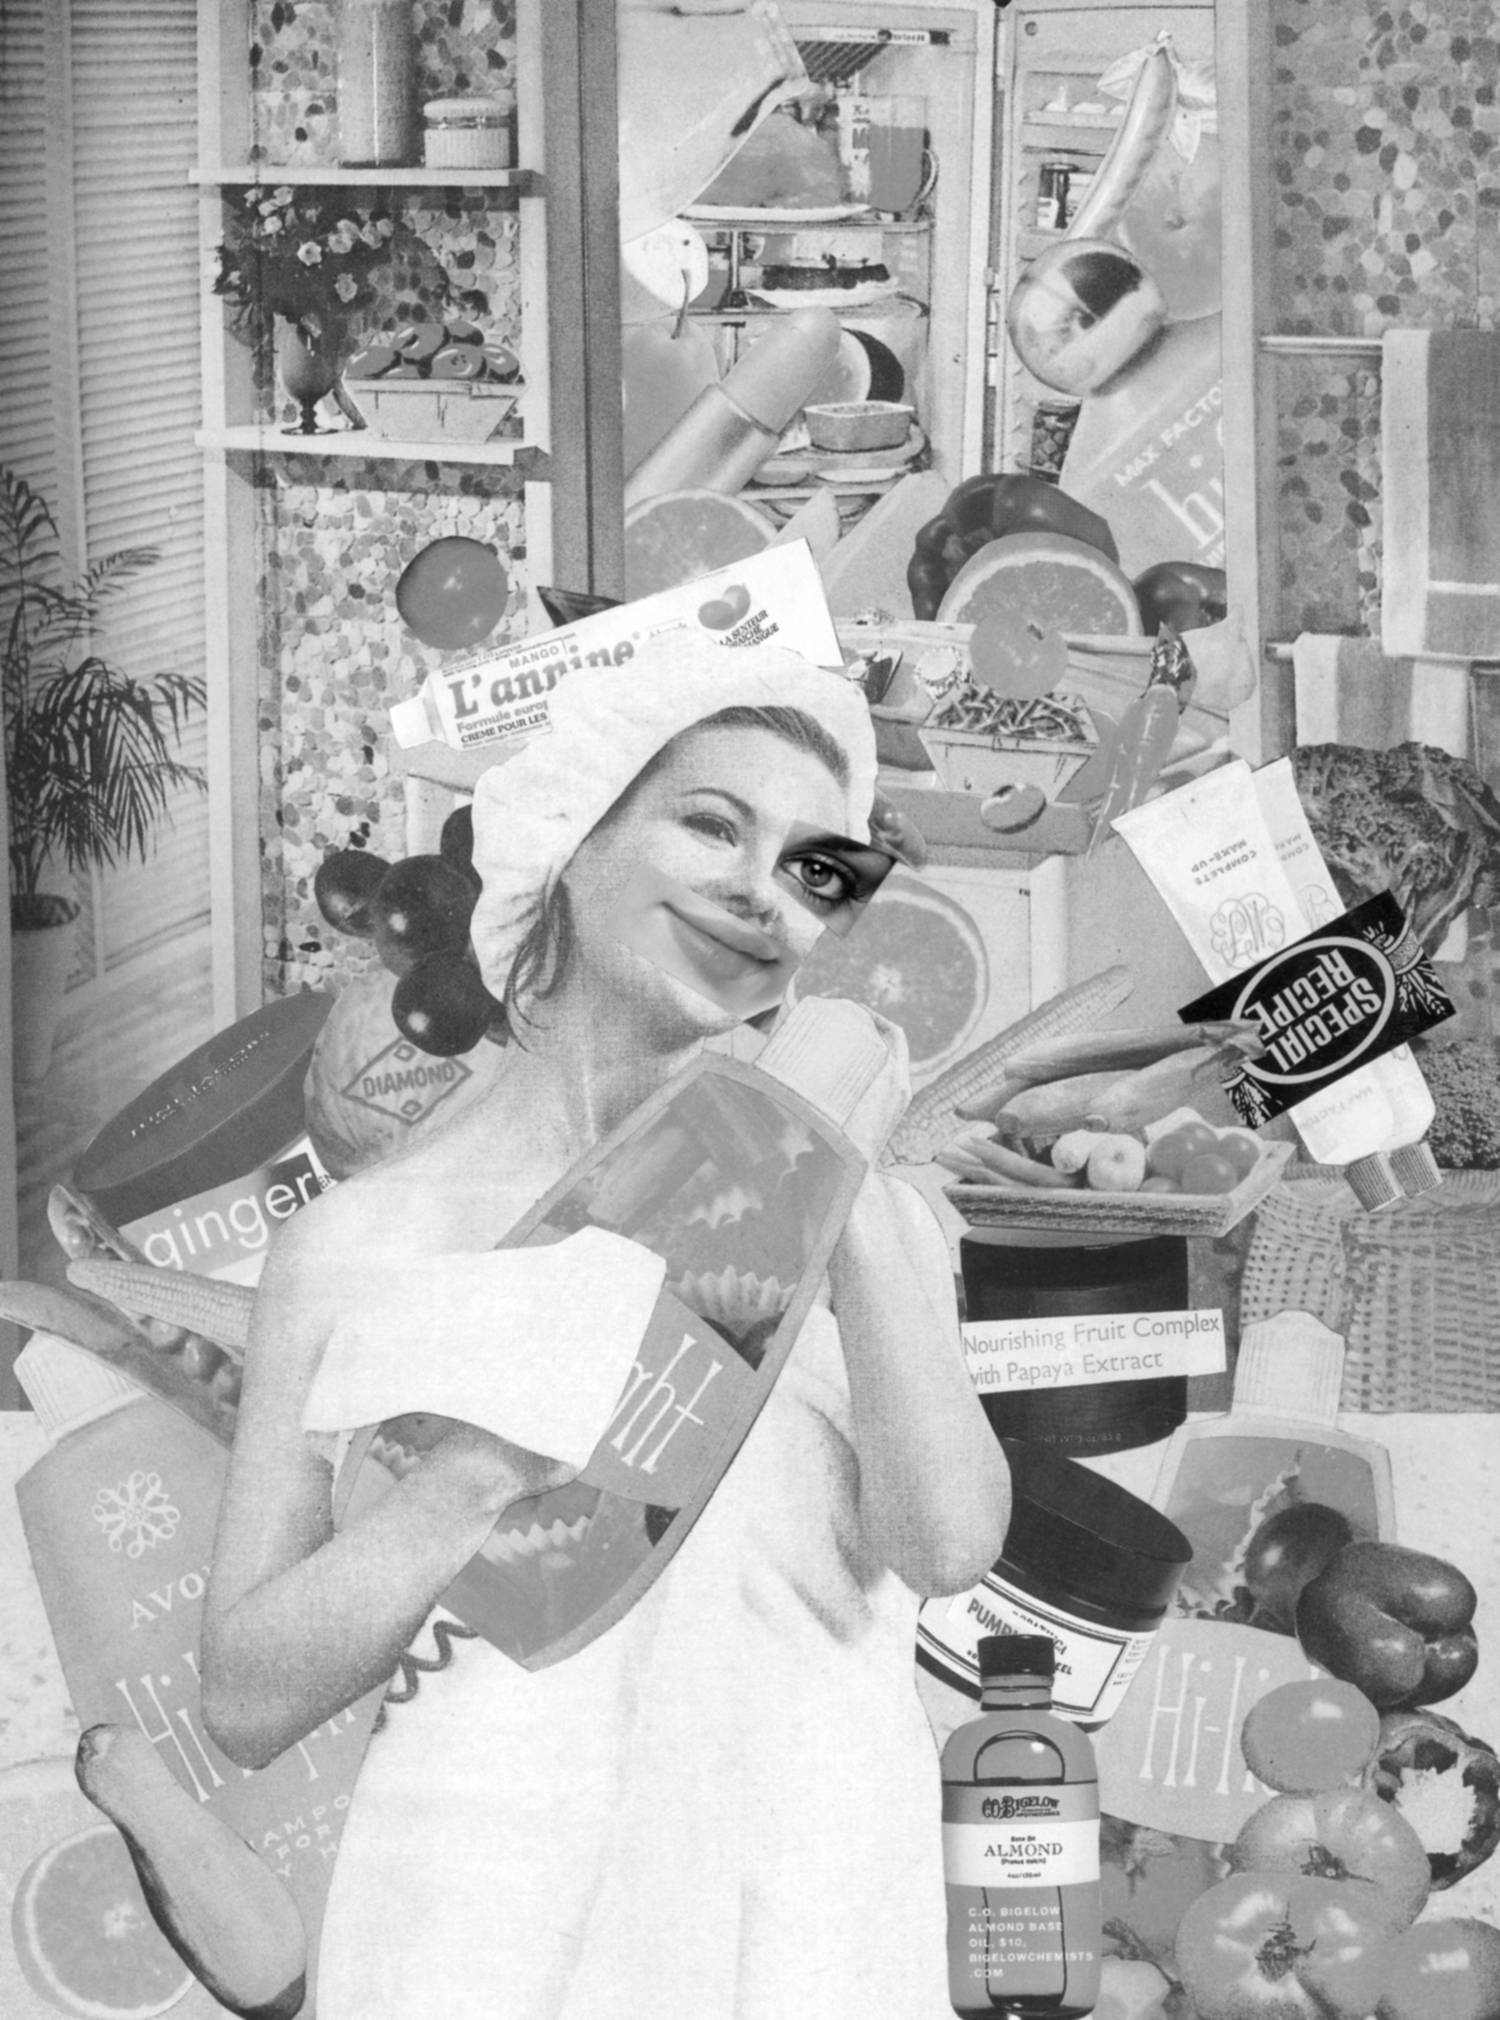 Collage illustration by Carrie Christian